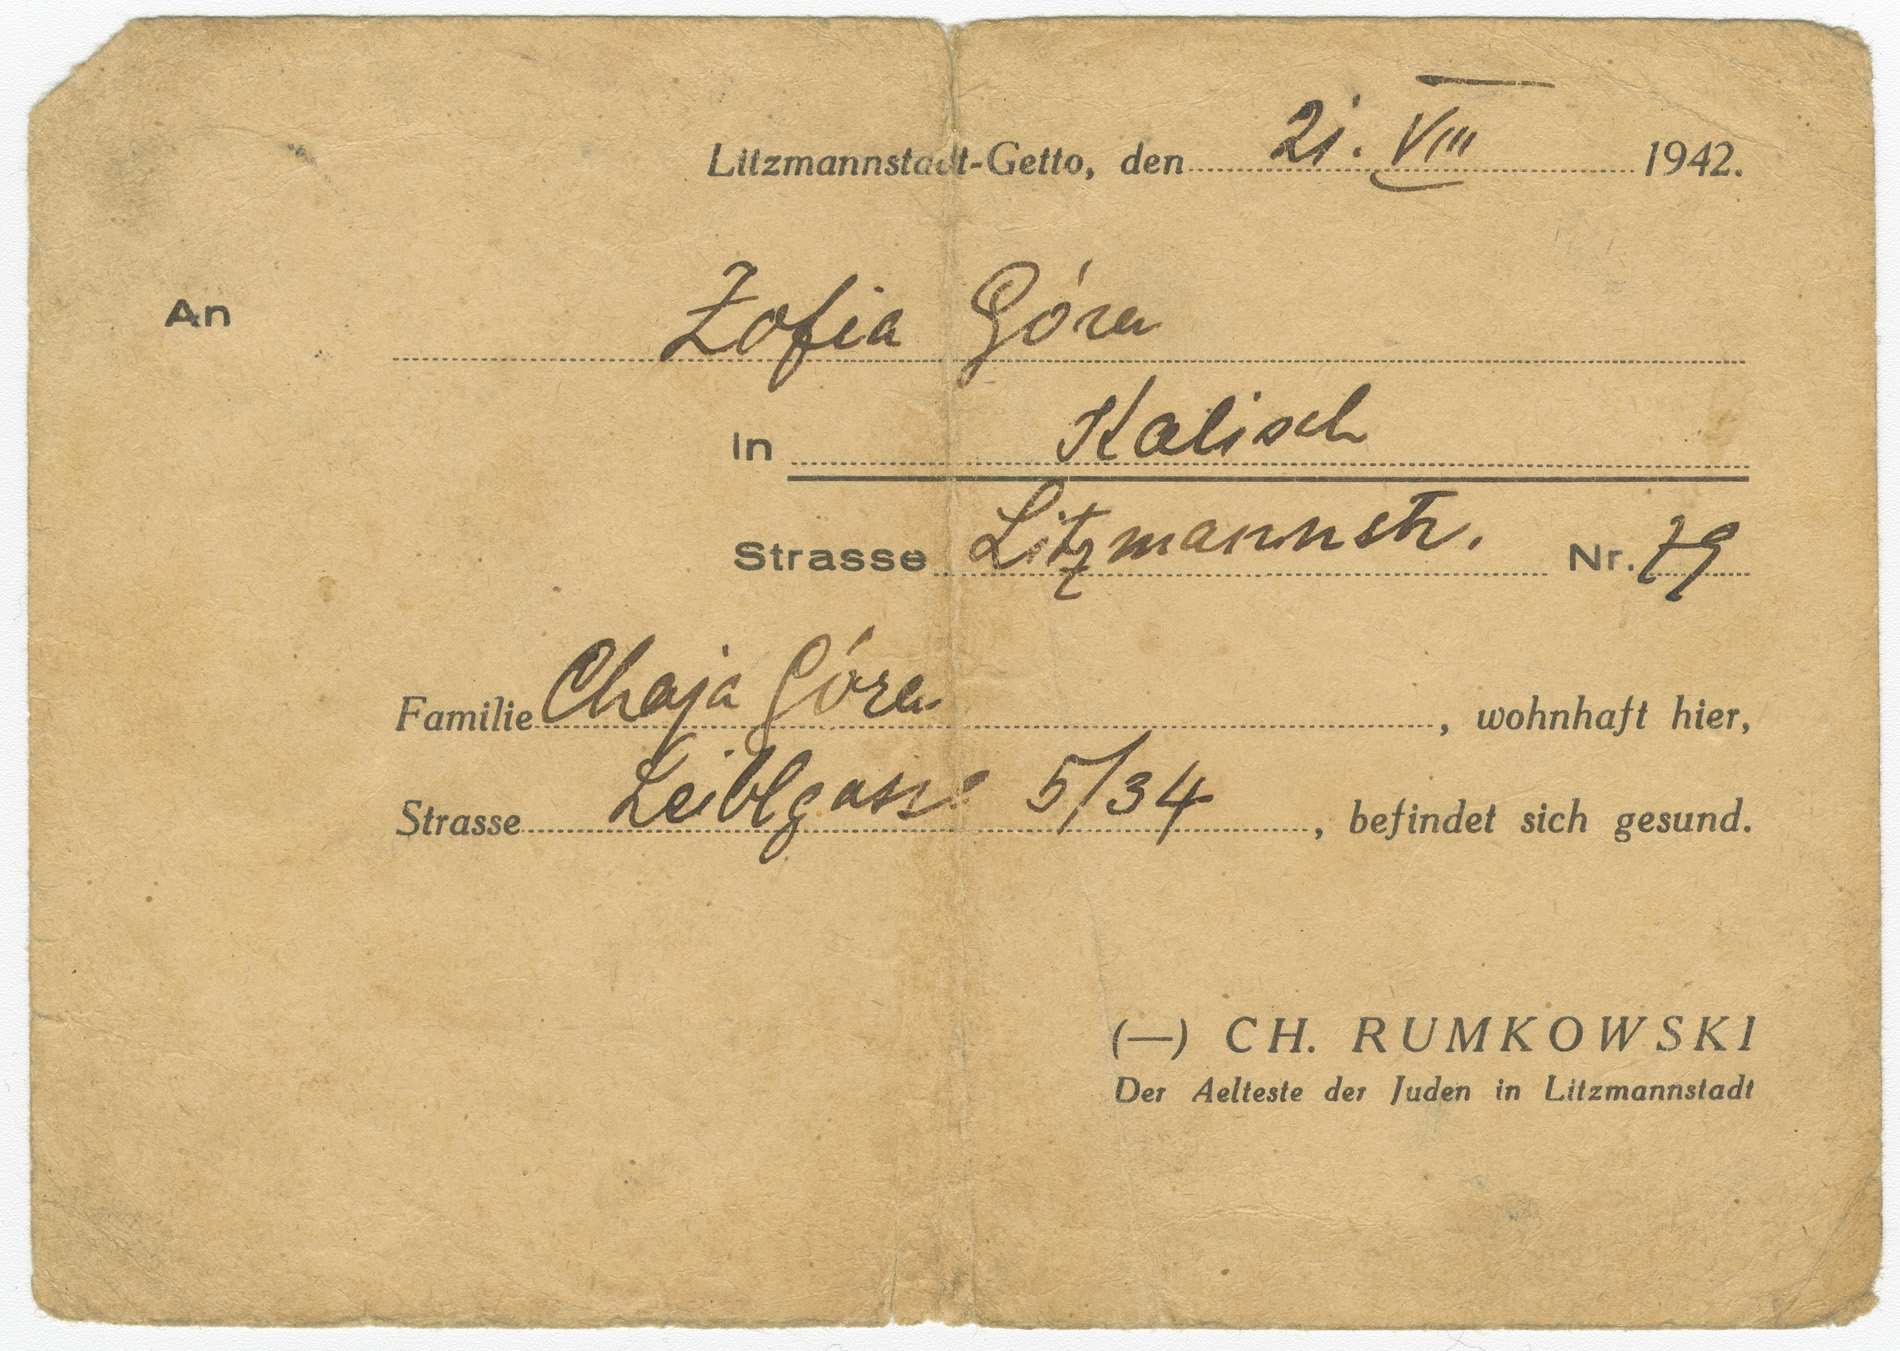 Pre-written postcard was sent from the Lodz ghetto, in Poland. Dated August 21, 1942, it was sent to Zofia Gora from her relative, Chaja Gora.